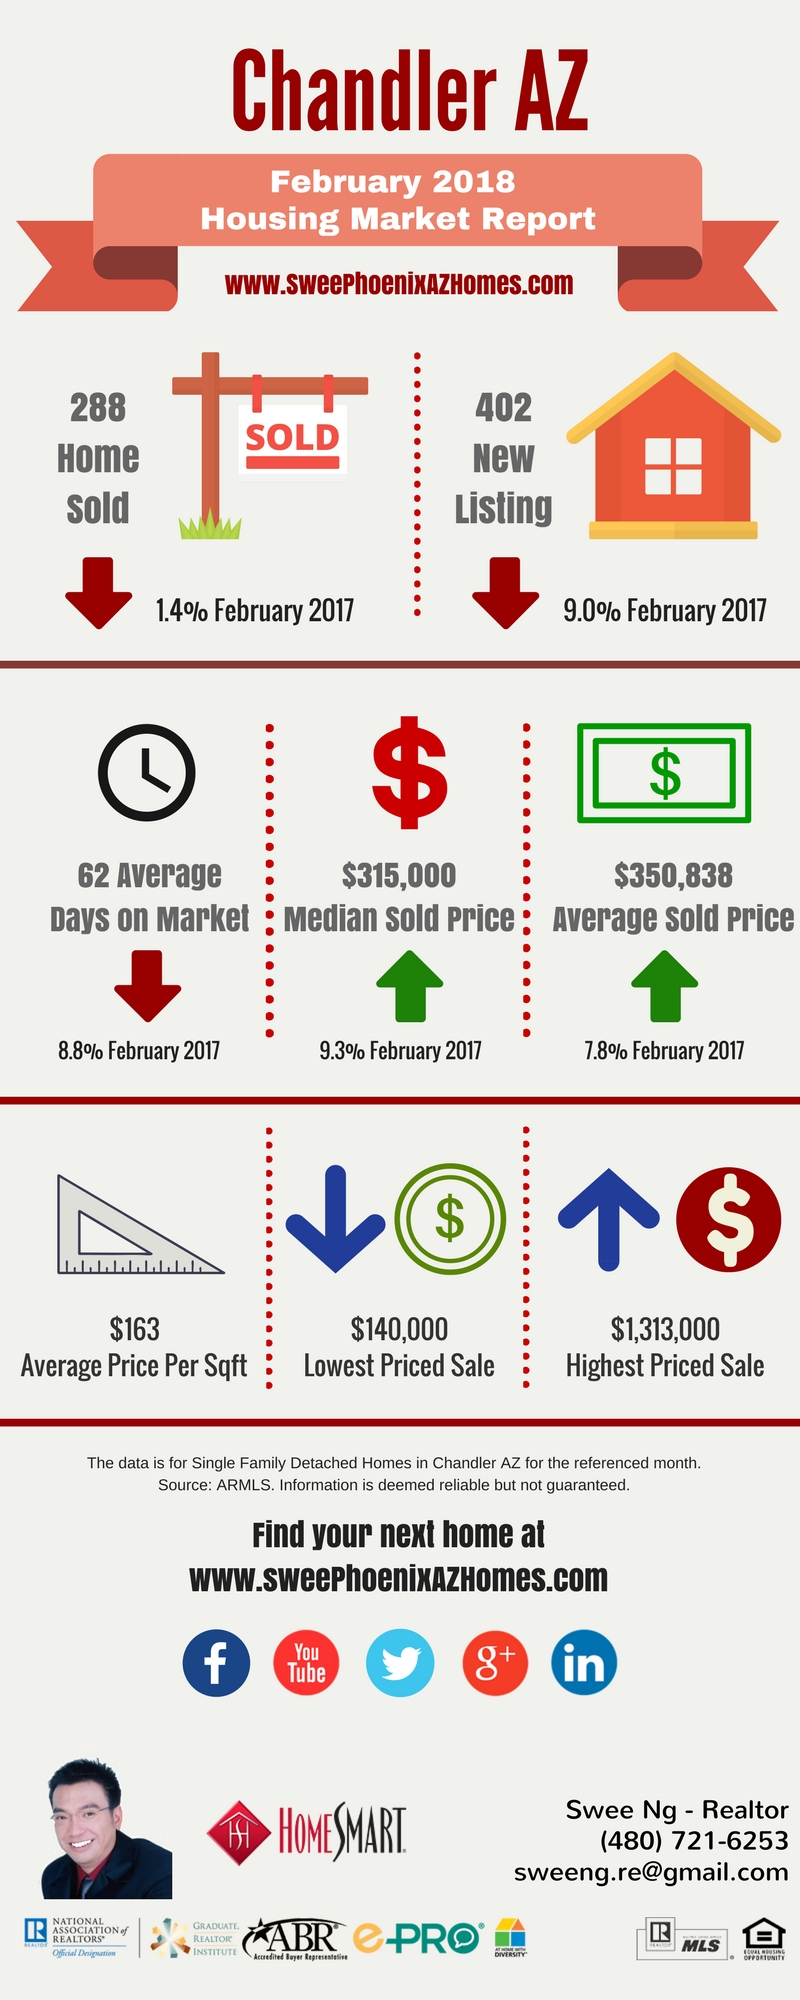 Chandler AZ Housing Market Update February 2018 by Swee Ng, House Value and Real Estate Listings